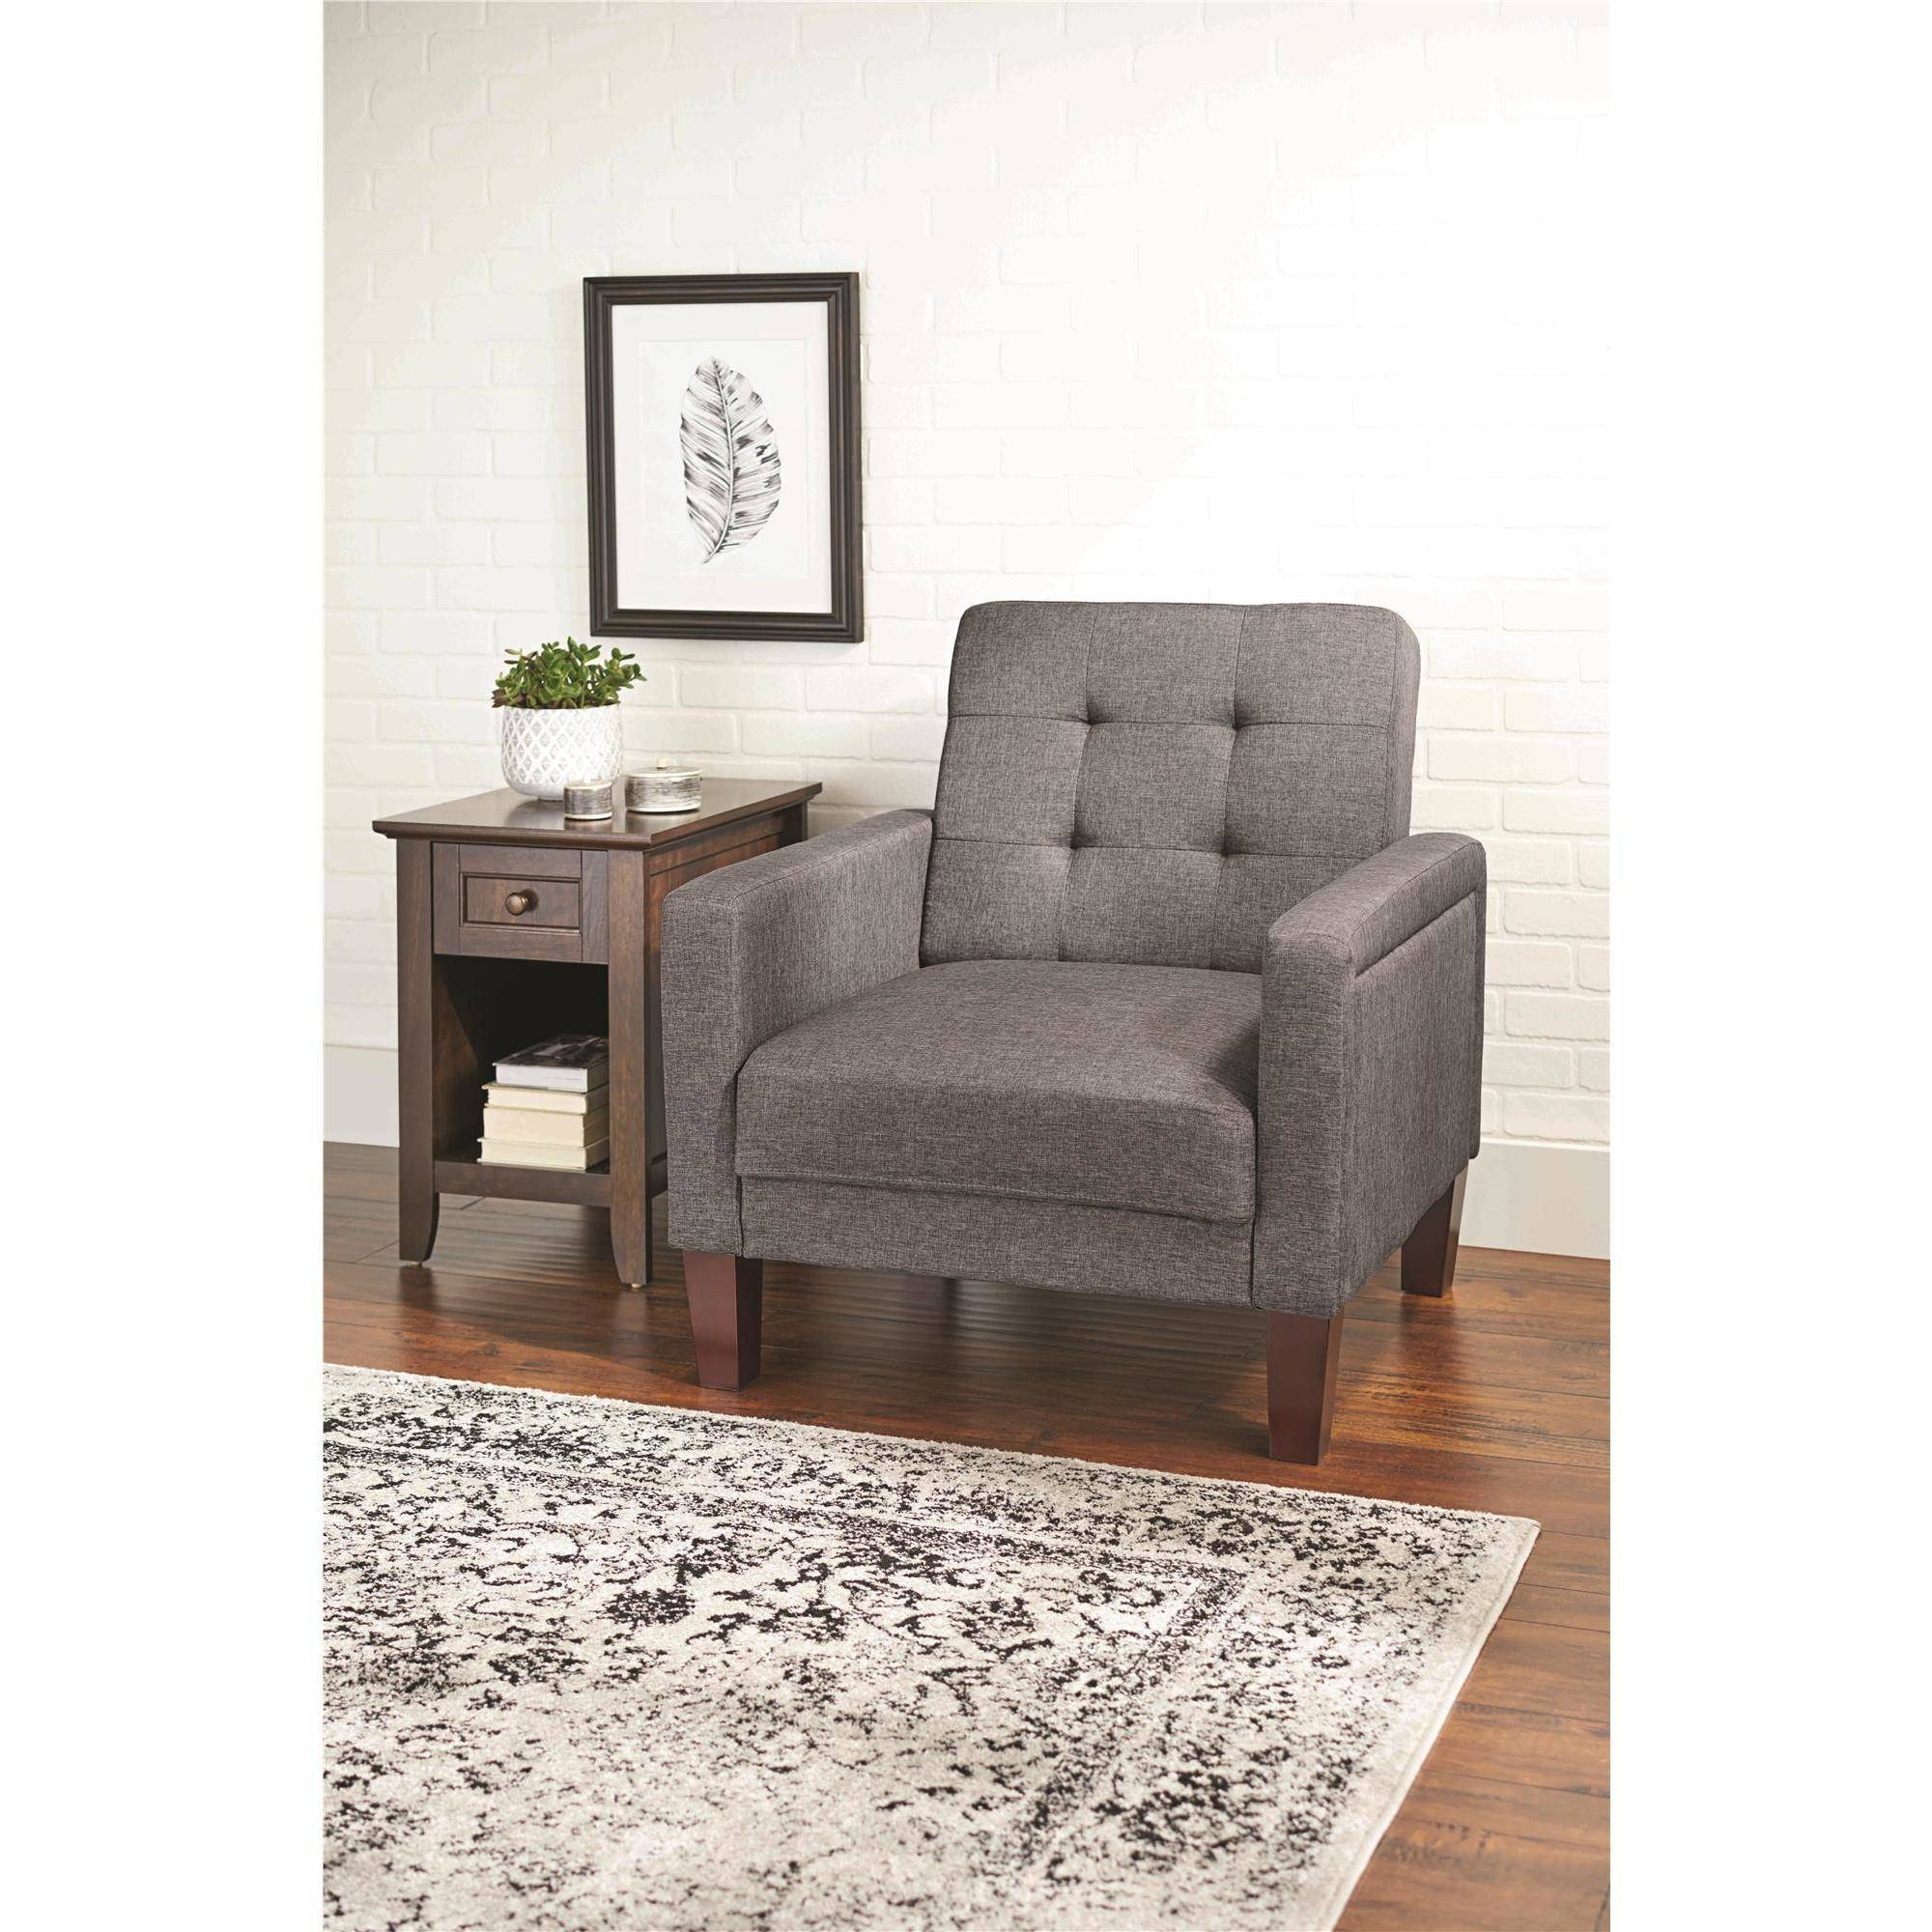 Better Homes And Gardens Porter Chair, Multiple Colors